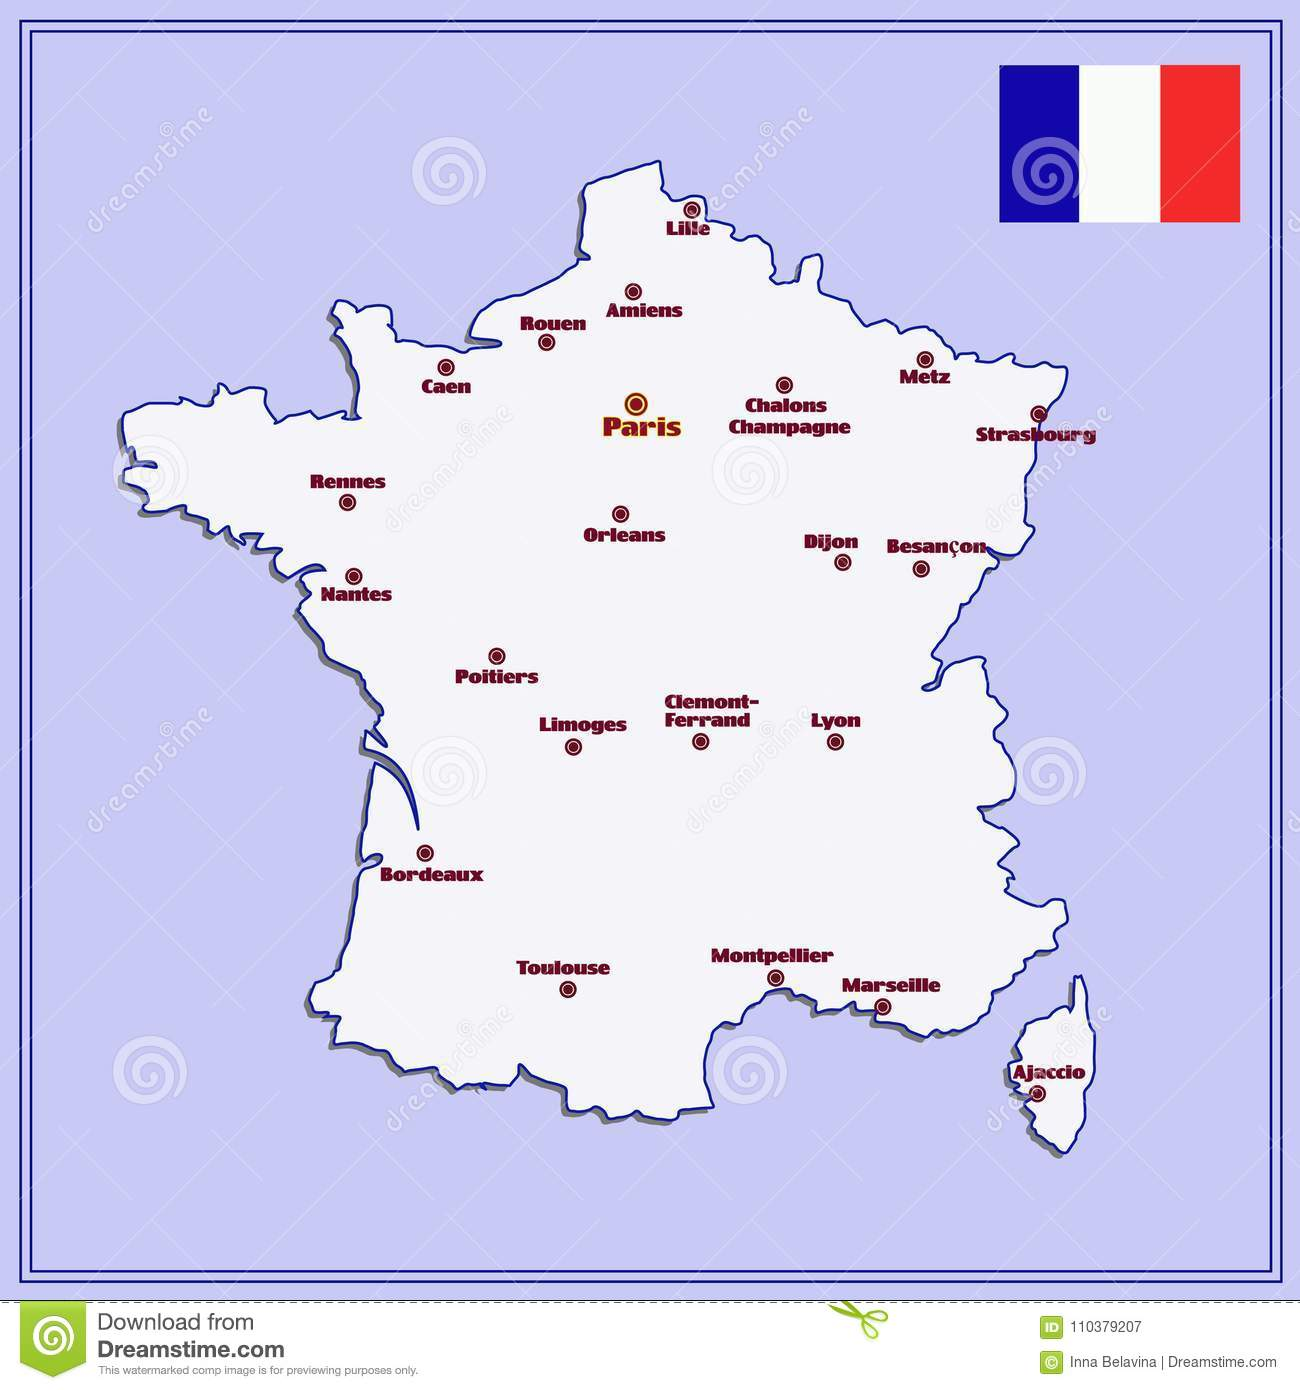 A Map Of France With Cities.Map Of France With Big Cities Stock Illustration Illustration Of